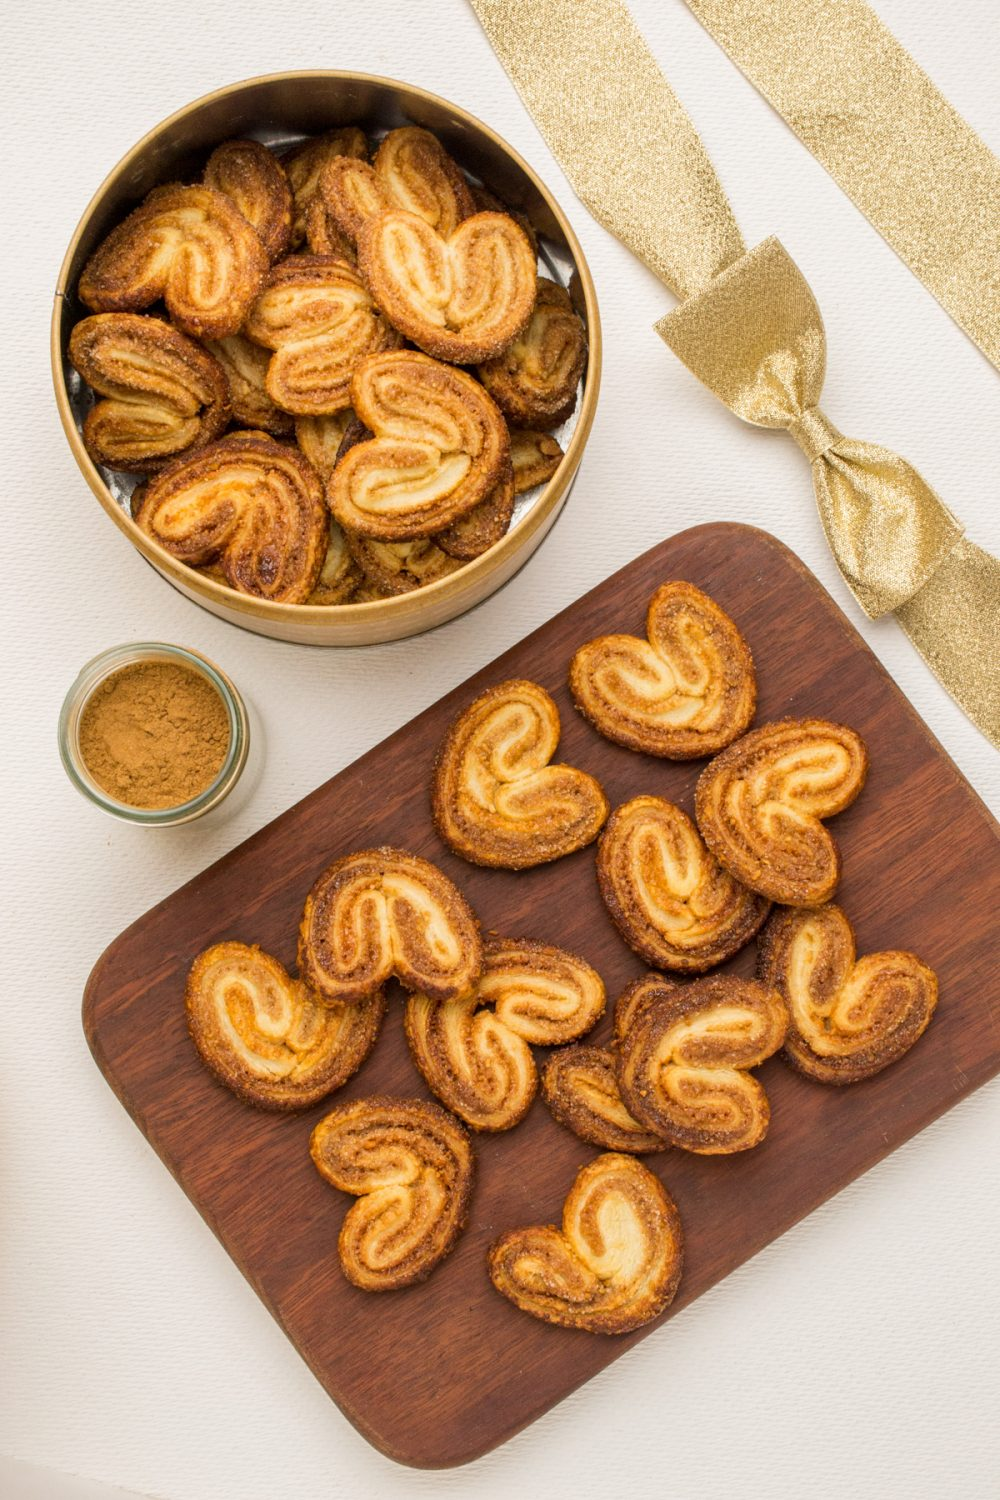 A tin full of cinnamon palmiers next to a wooden board with more cookies.